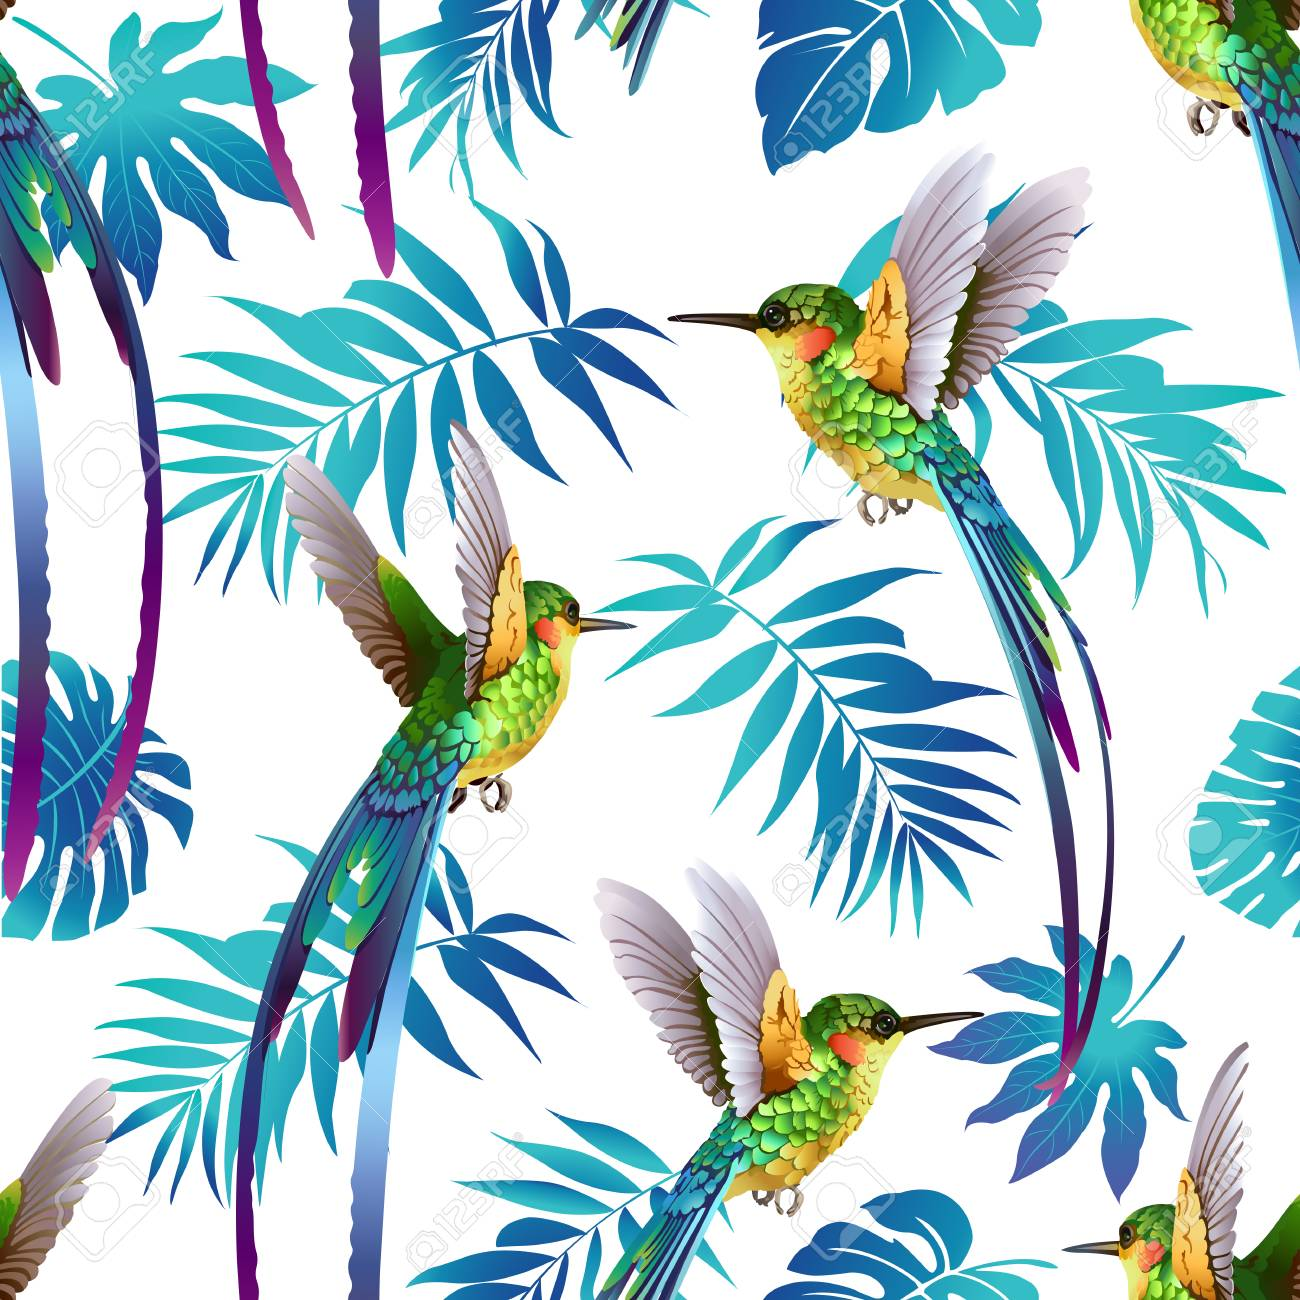 Hummingbird and Tropical Flowers Background Seamless pattern vector. - 99347684